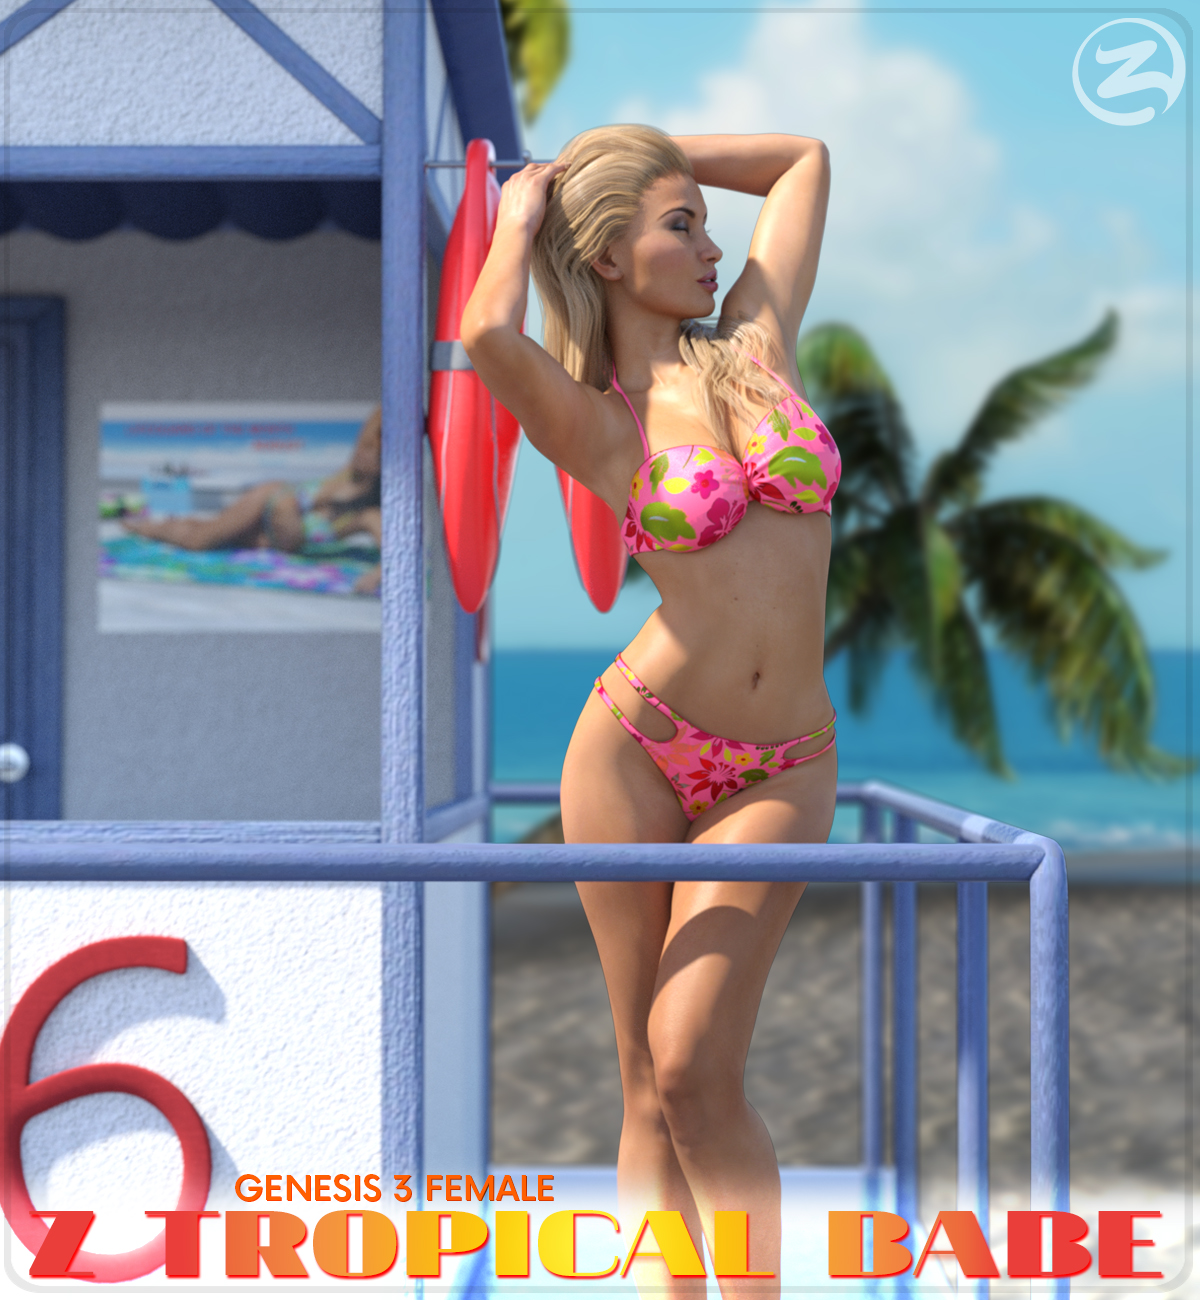 Z Tropical Babe - Poses for the Genesis 3 Females